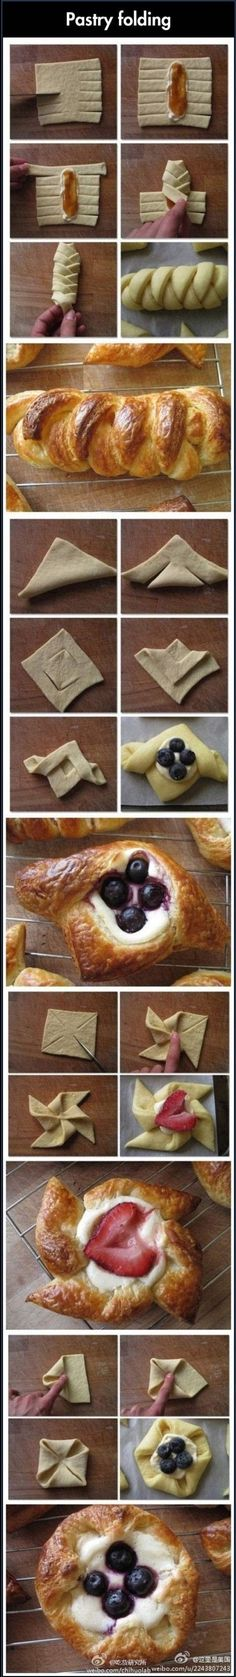 folded pastries Köstliche Desserts, Delicious Desserts, Dessert Recipes, Yummy Food, Awesome Desserts, Fun Recipes, Plated Desserts, Recipe Ideas, Pastries